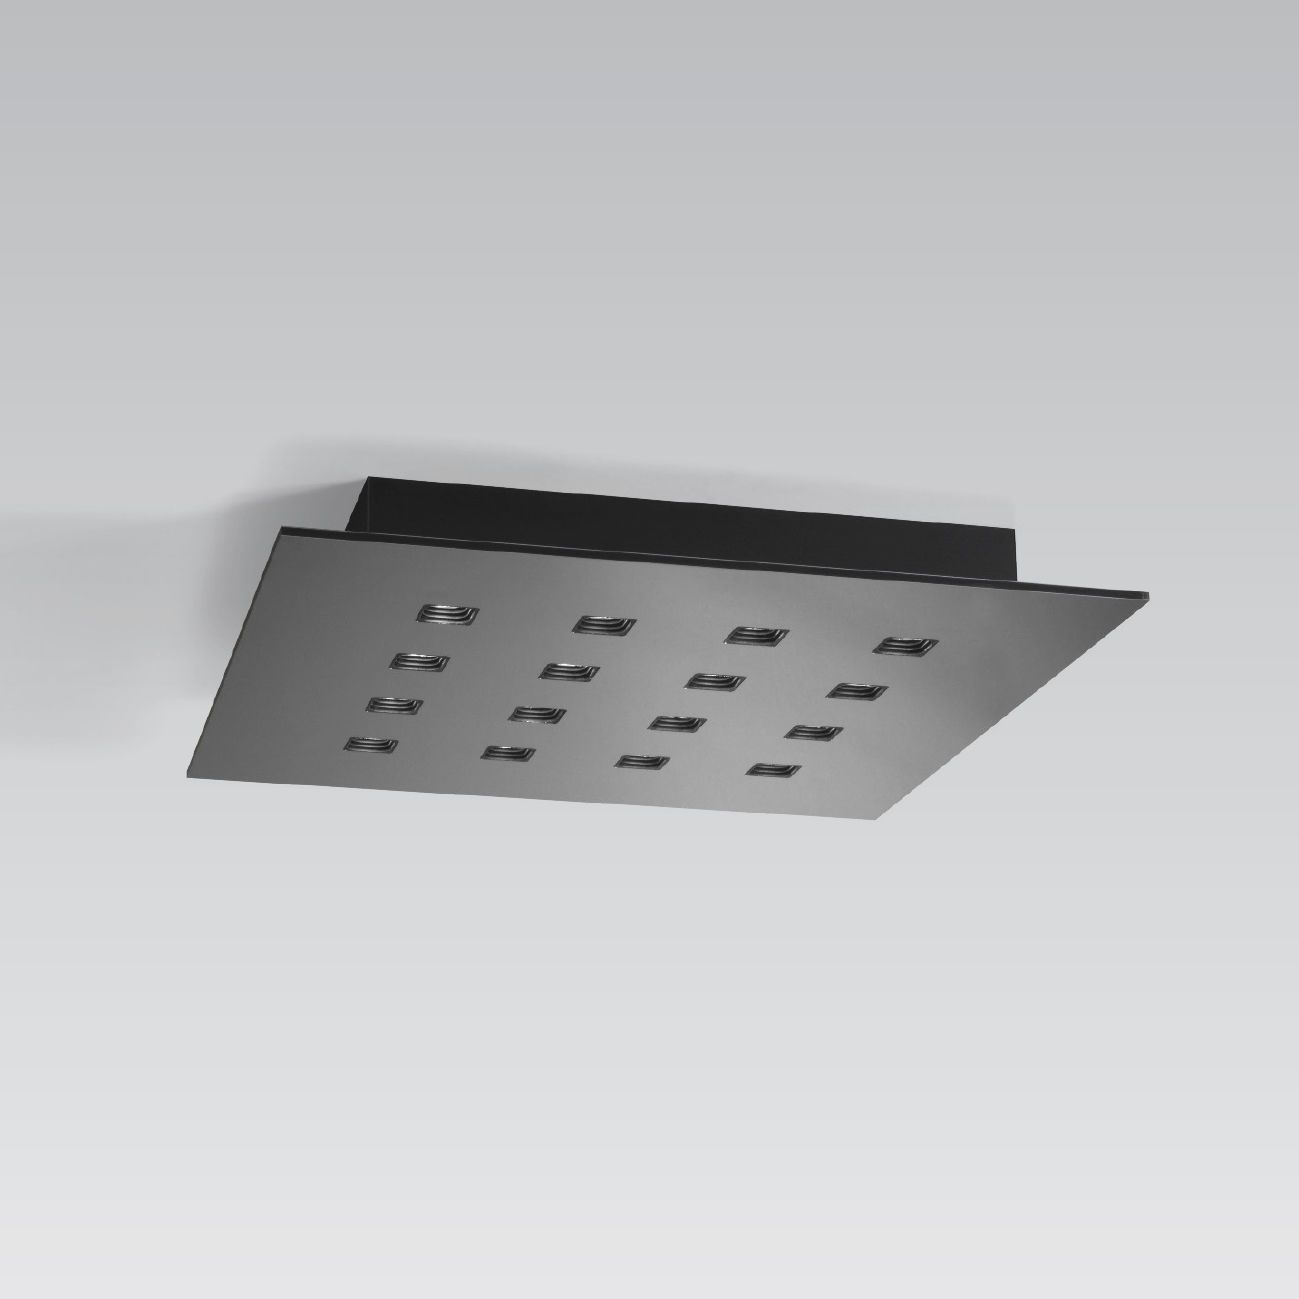 Recessed ceiling light fixture fluorescent led square combo discover all the information about the product recessed ceiling light fixture fluorescent led square combo xenon architectural lighting and find mozeypictures Image collections